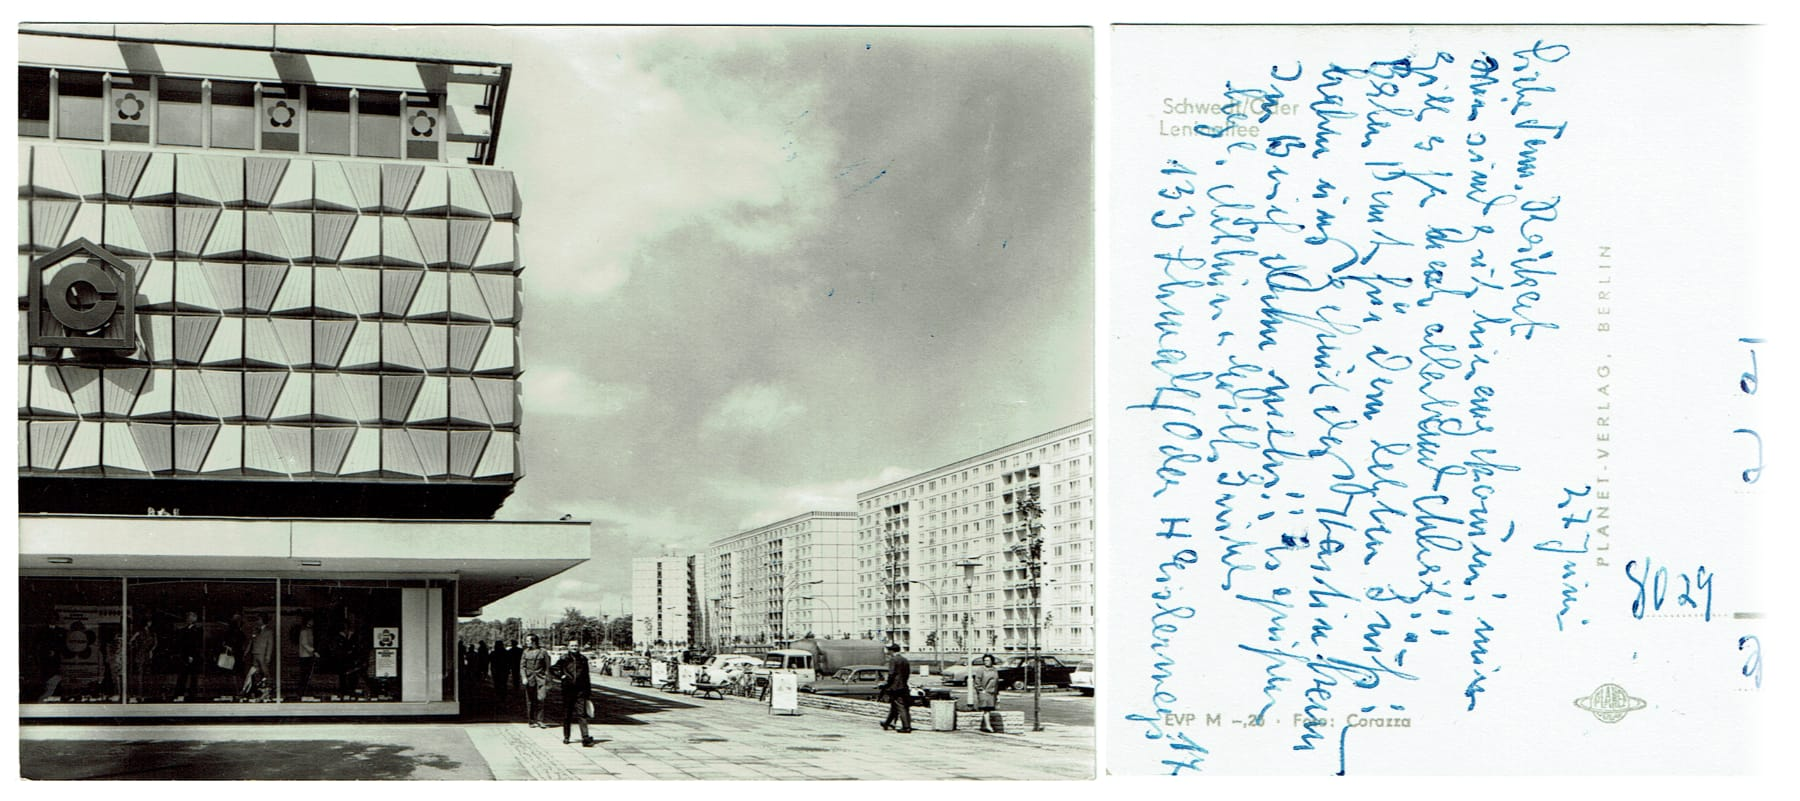 """""""Schwedt, Leninallee"""" – Scan of an old post card from the GDR"""